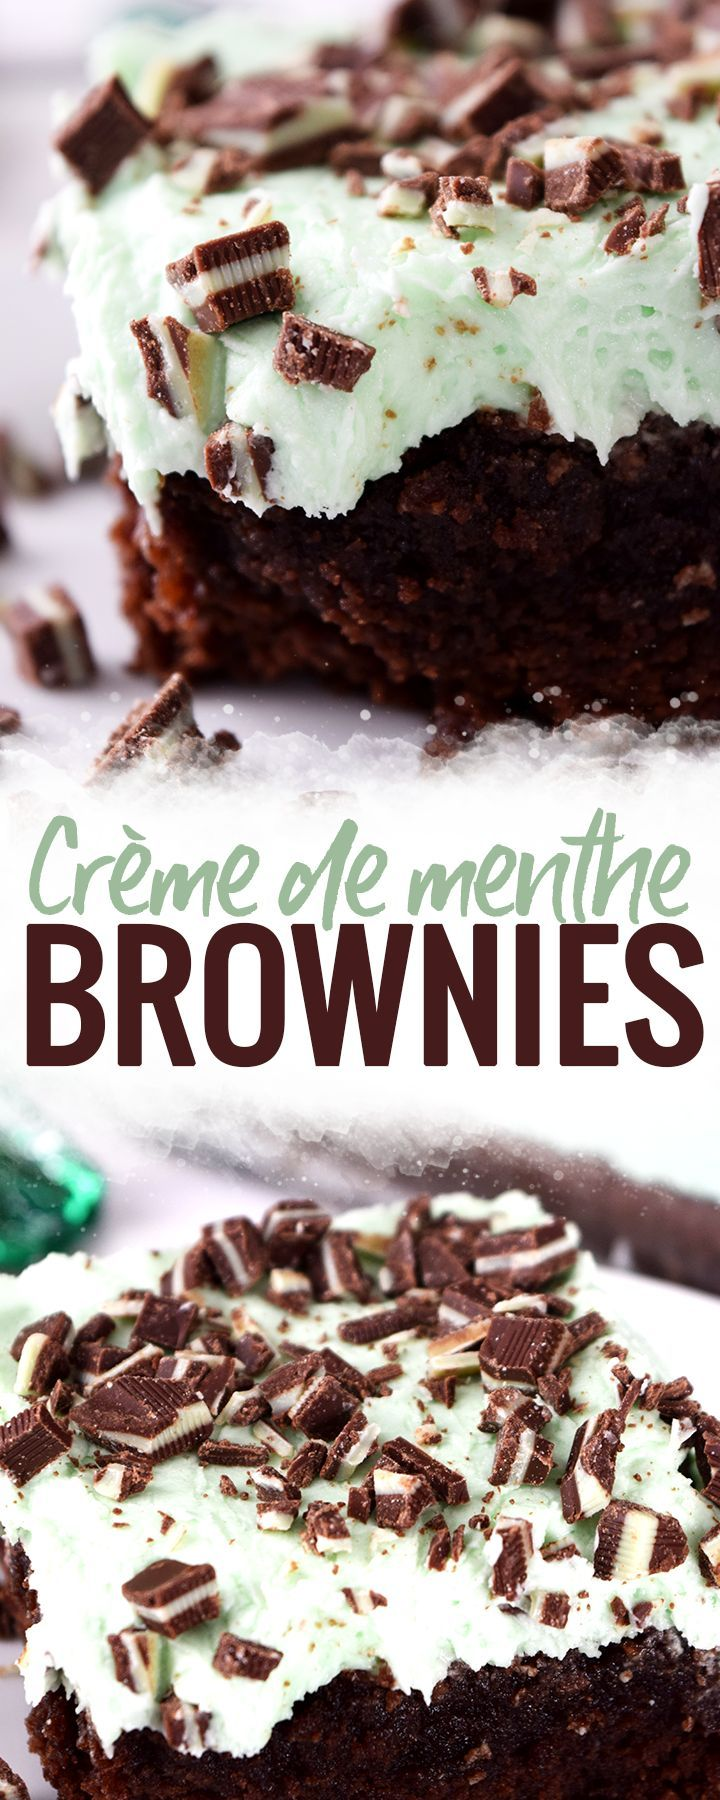 Creme de Menthe Brownies - these Crème de menthe brownies bring together mint buttercream frosting, liqueur and fudge brownies into one delicious treat. Top with Andes mints and you have a winner.  #Brownies #Cremedementhe #mint #dessert #holidaydessert